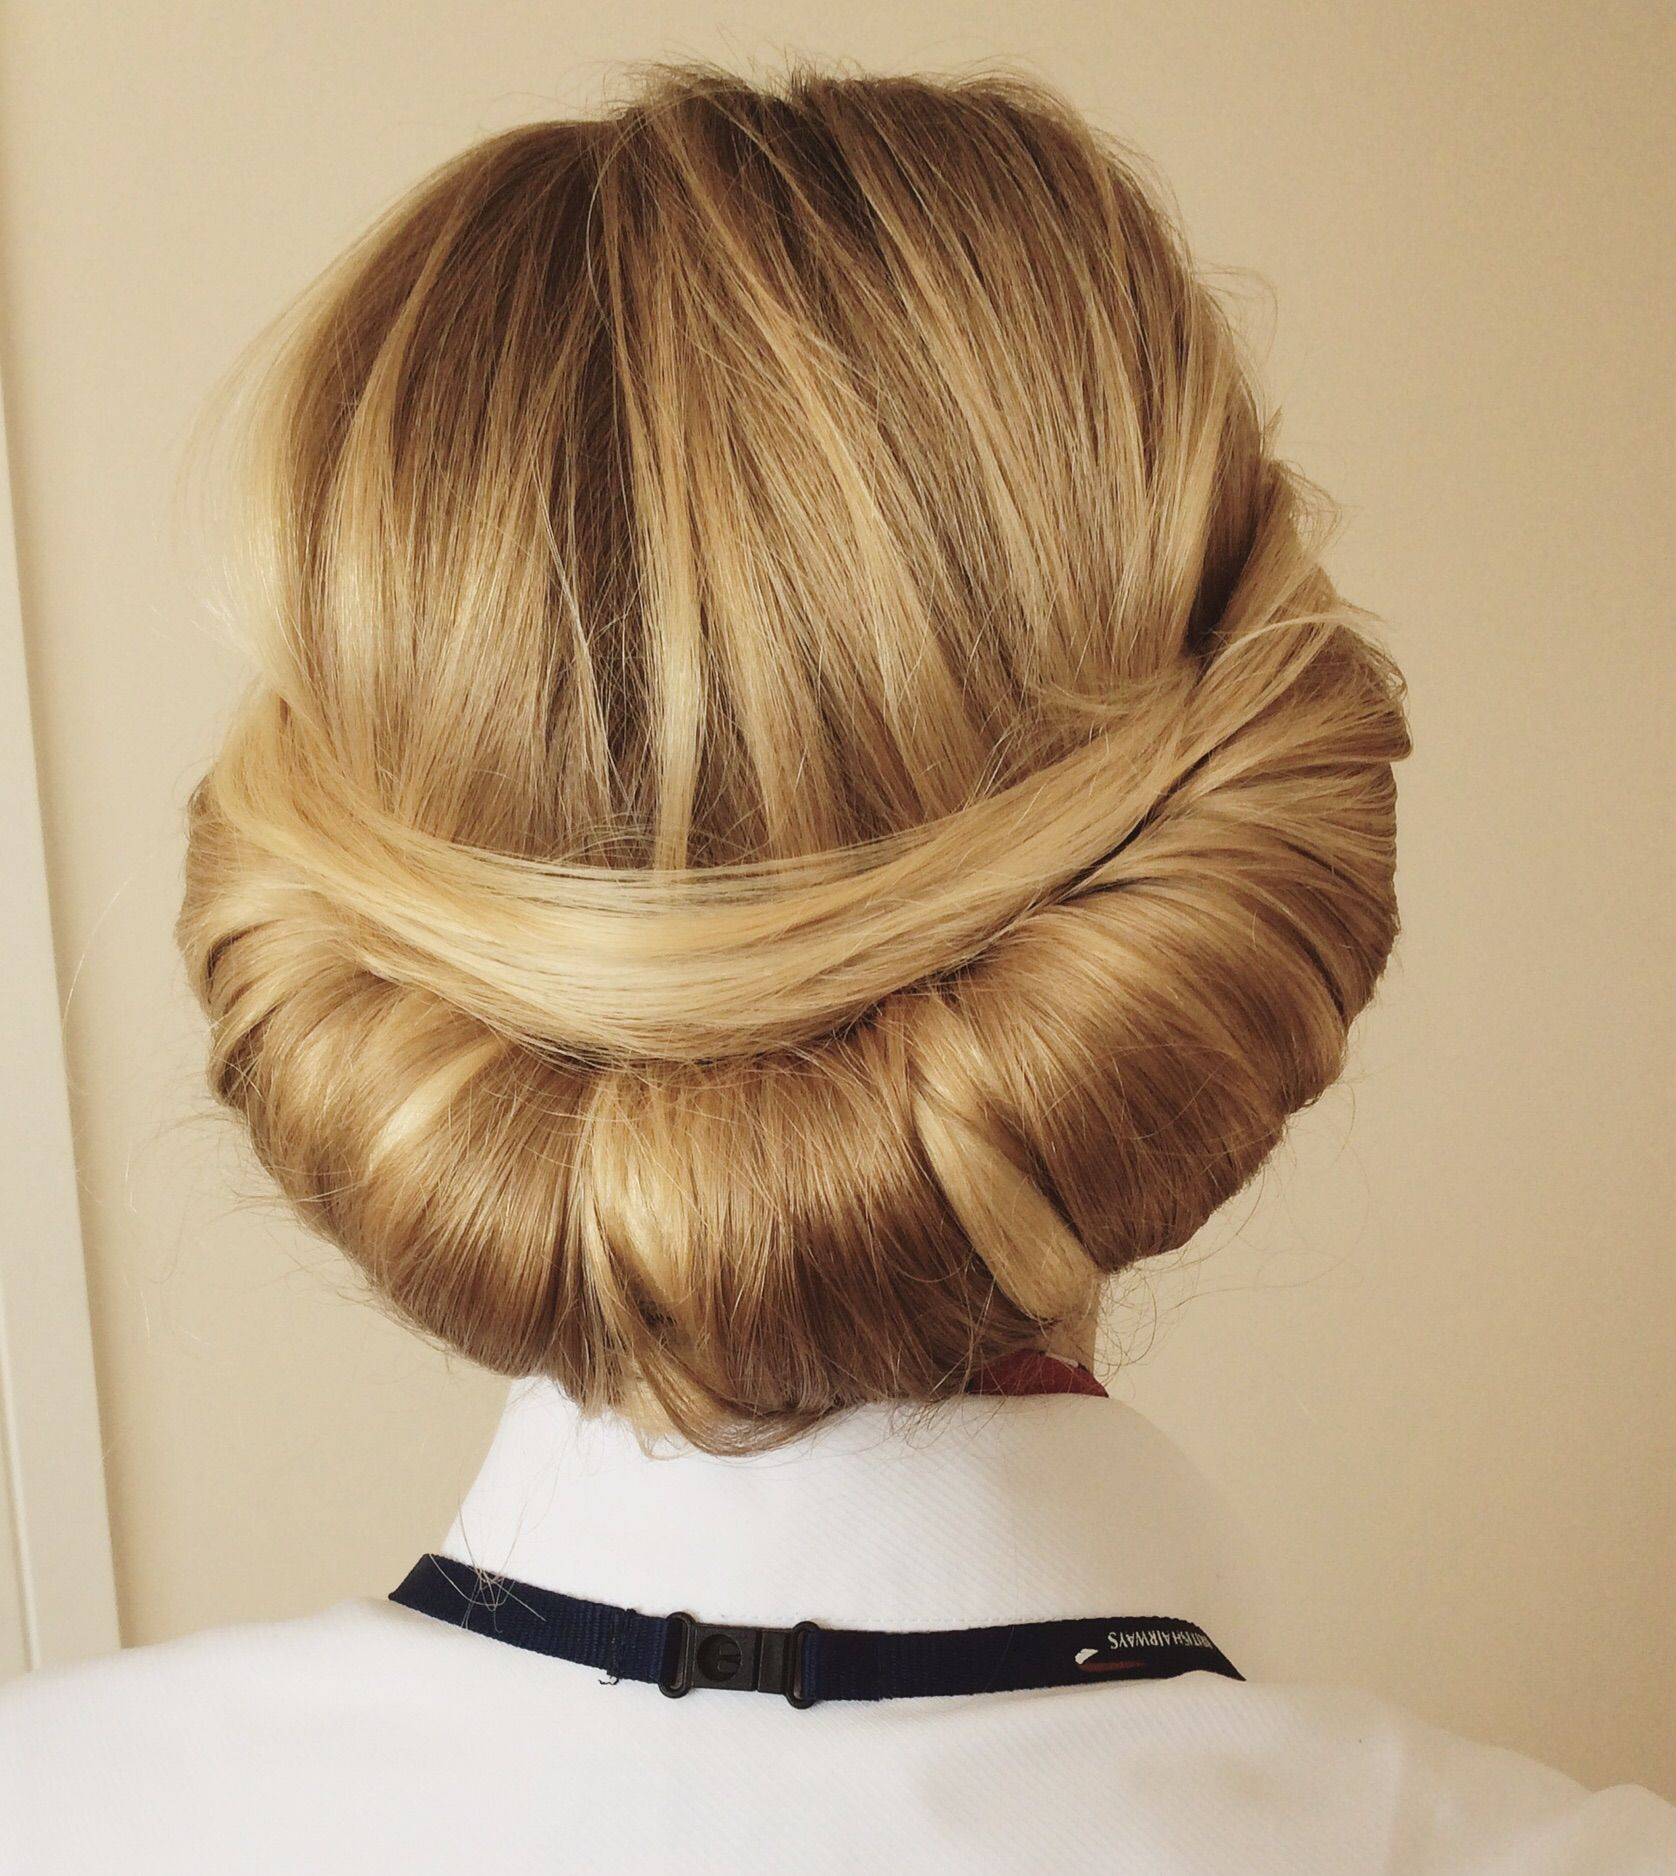 Cabin Crew Haarknoten Cabin Haarknoten Crew Hair Cool Hairstyles Hair Styles